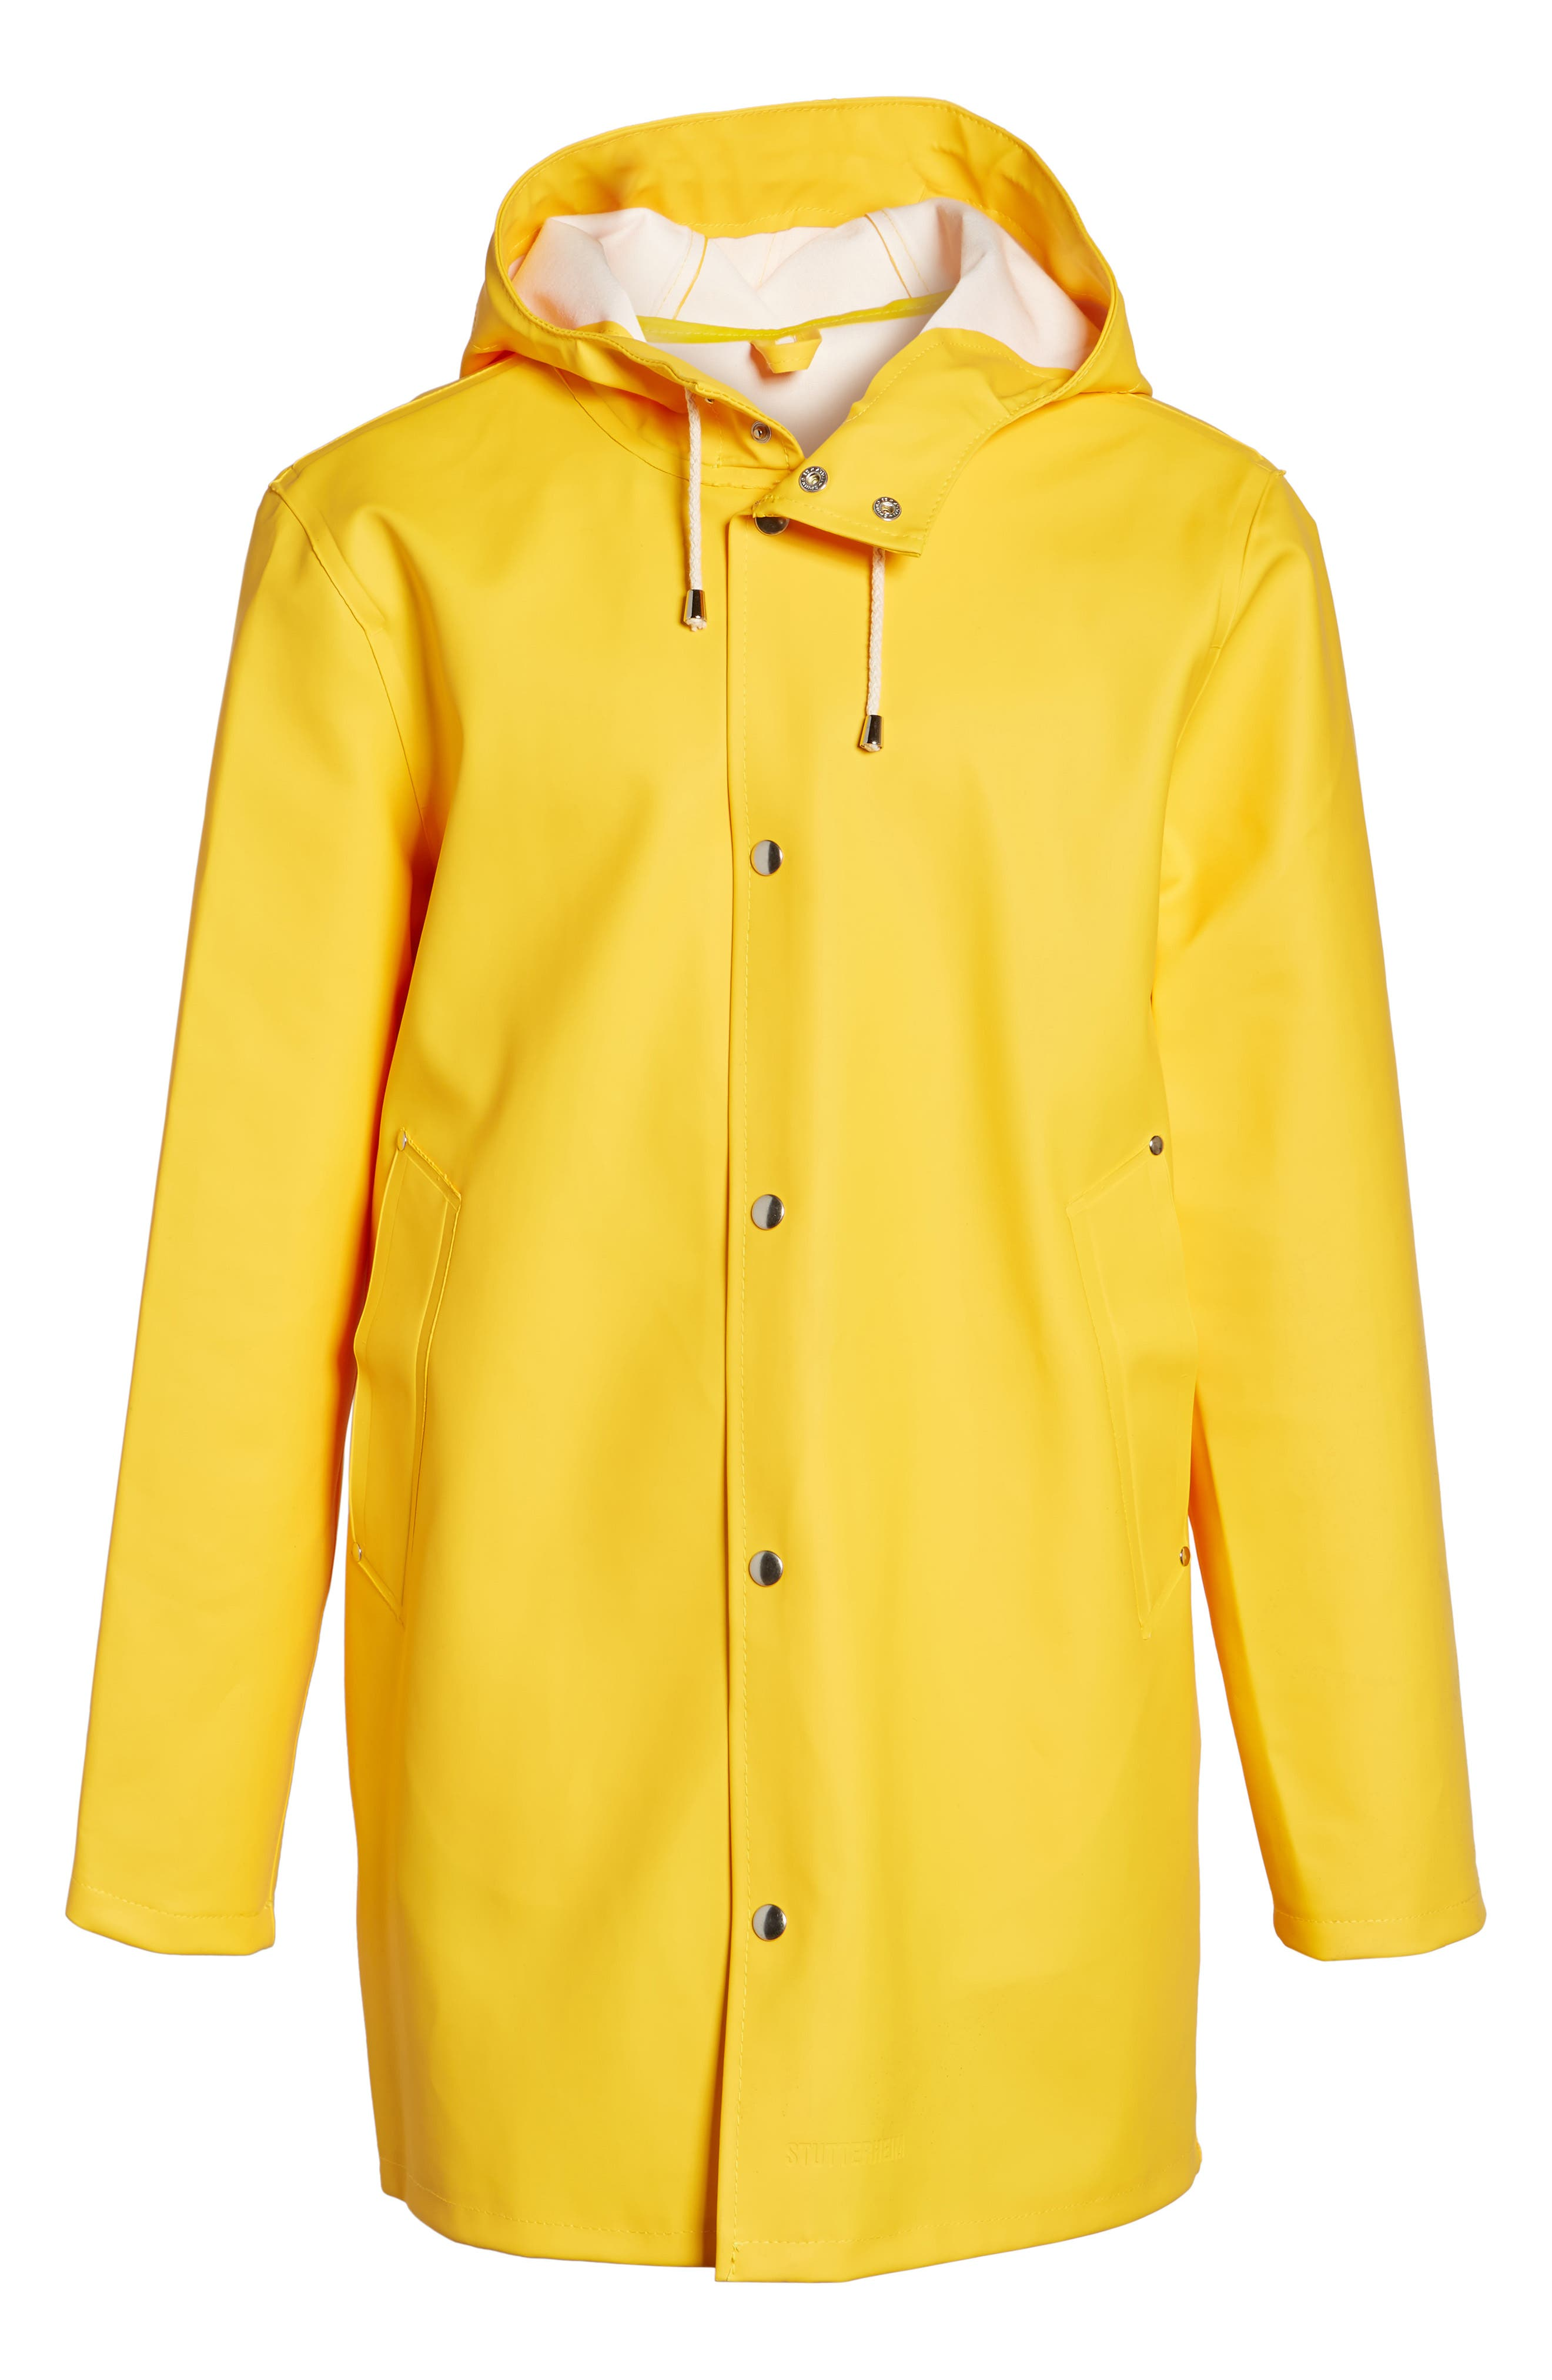 Stockholm Waterproof Hooded Raincoat,                             Alternate thumbnail 5, color,                             Yellow